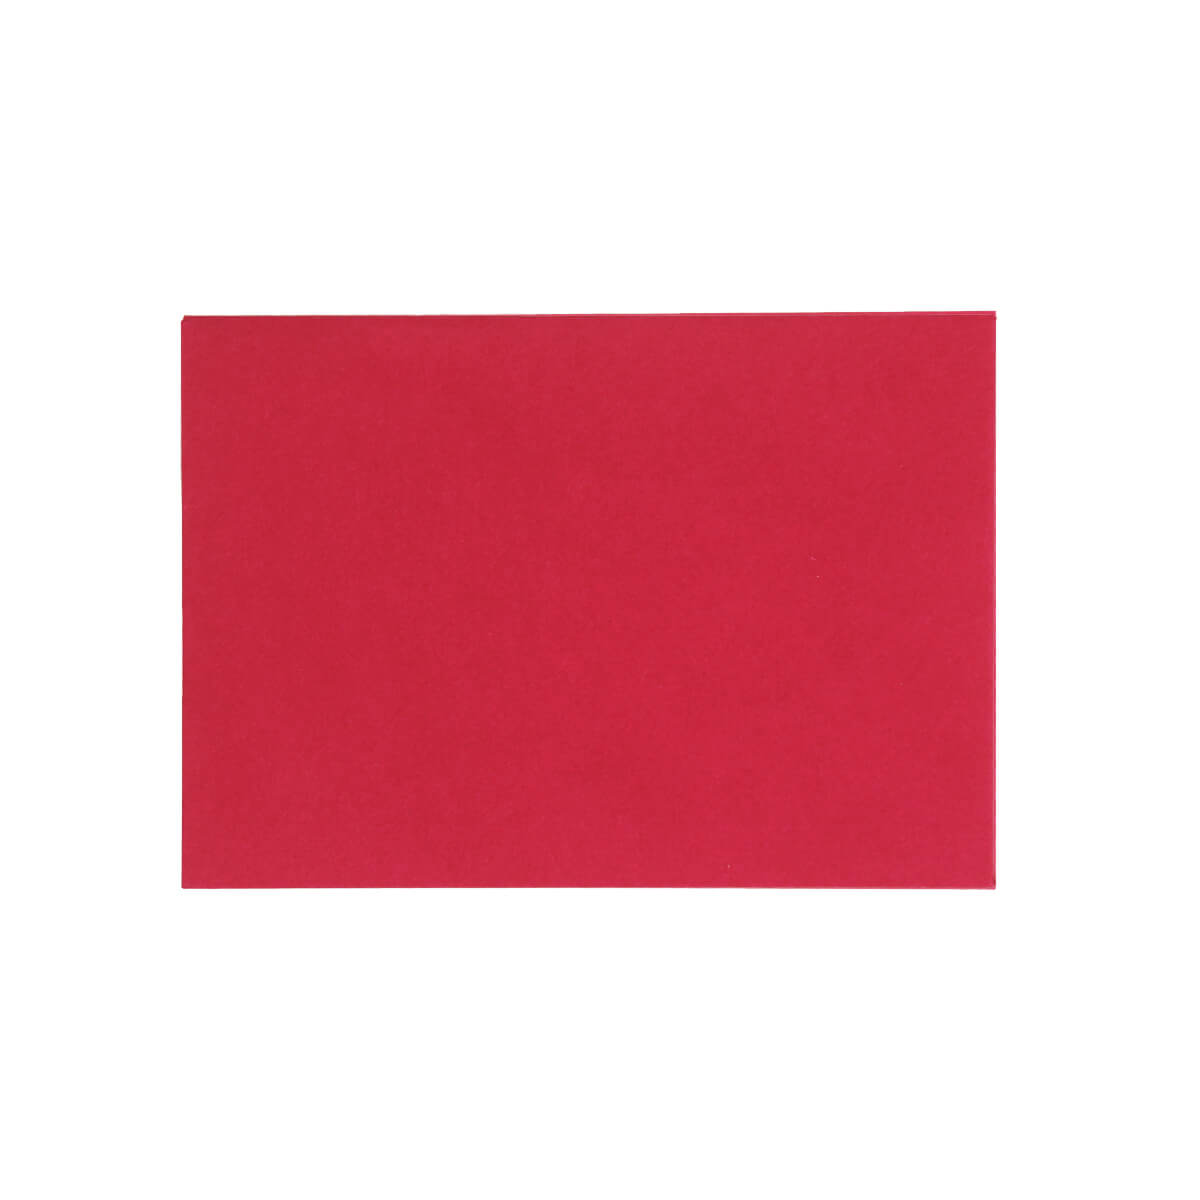 FUCHSIA PINK 70 x 100 mm GIFT TAG ENVELOPE (i2)